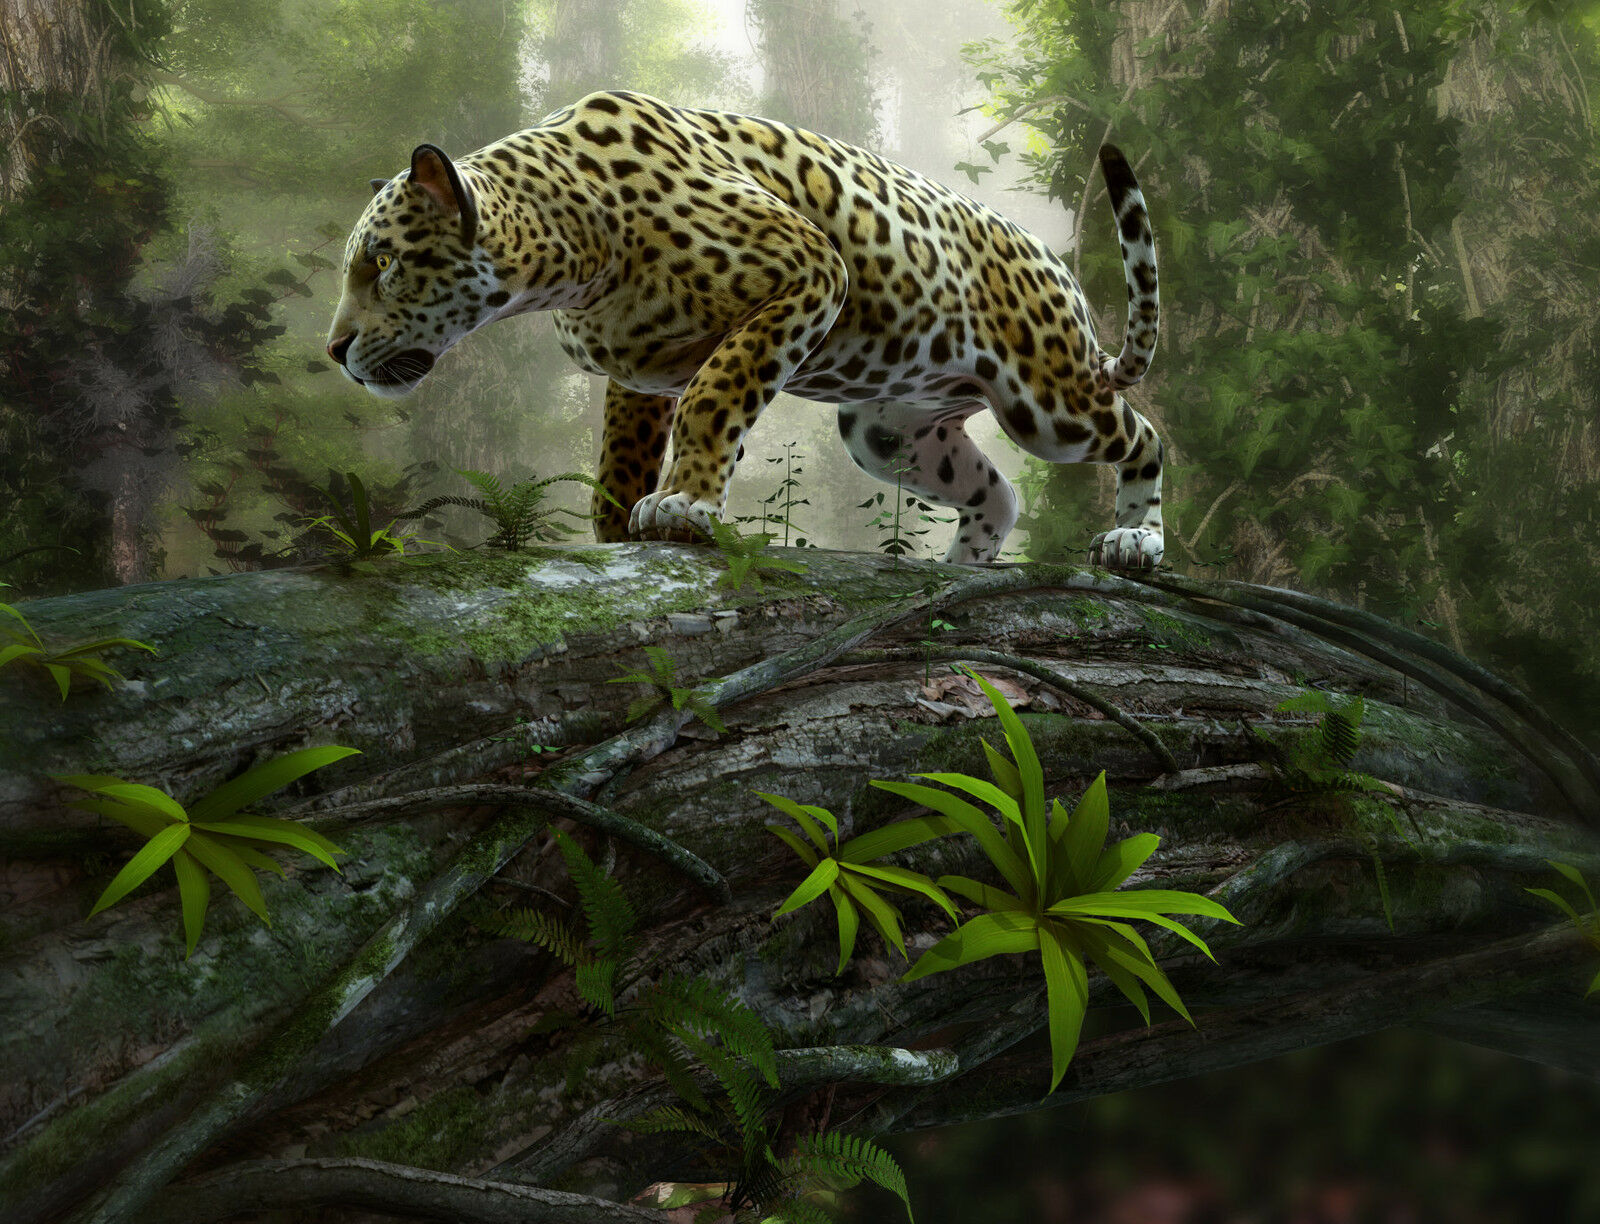 NON-WOVEN Photo Wallpaper (63V) -JAGUAR on the PRAWL-350cmx260cm 7 strips Mural